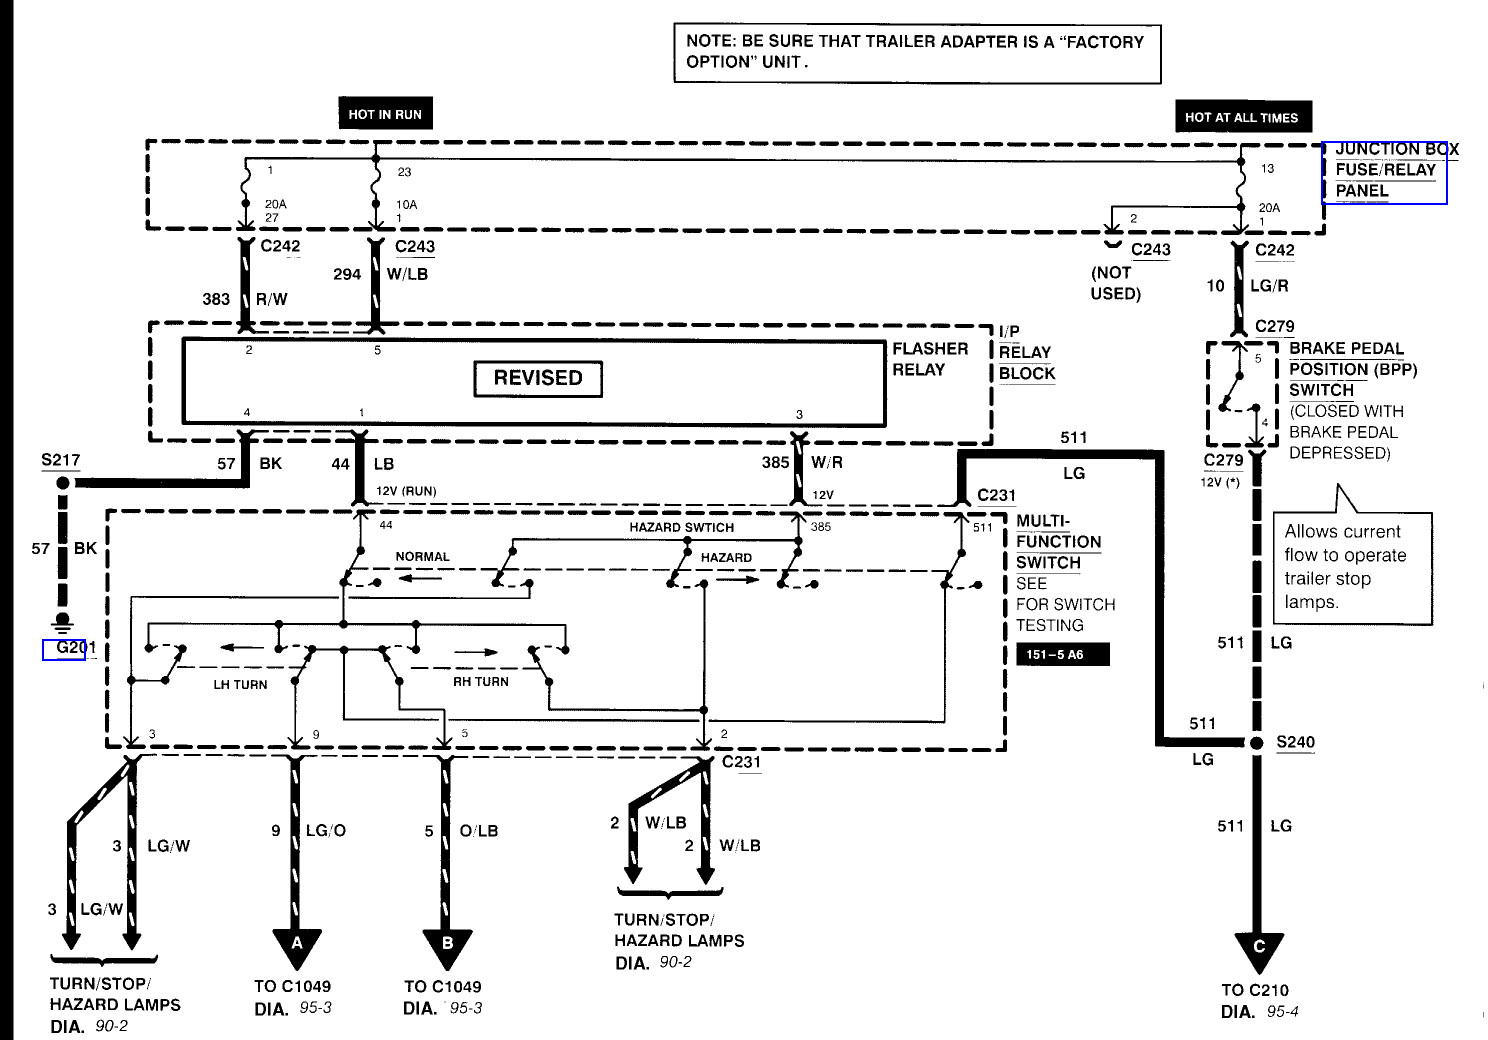 1995 Ford F250 Trailer Wiring Diagram